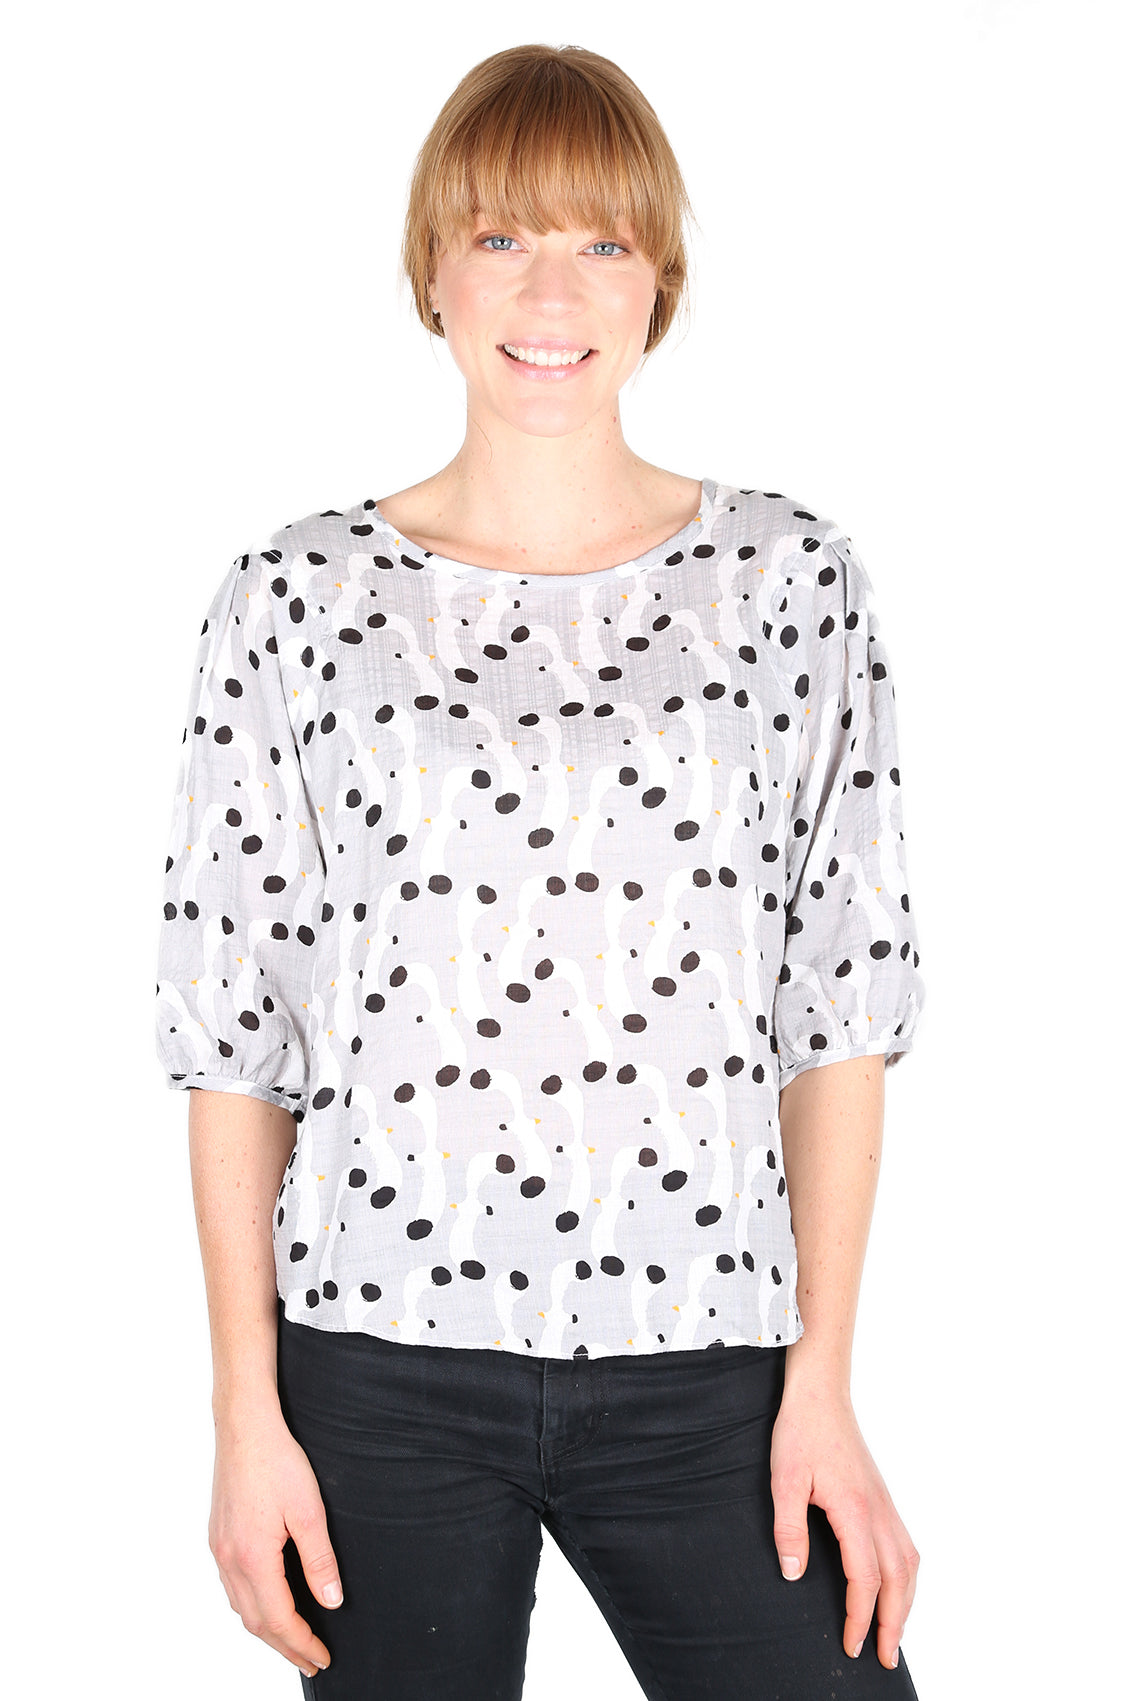 Swooping Seagulls Blouse